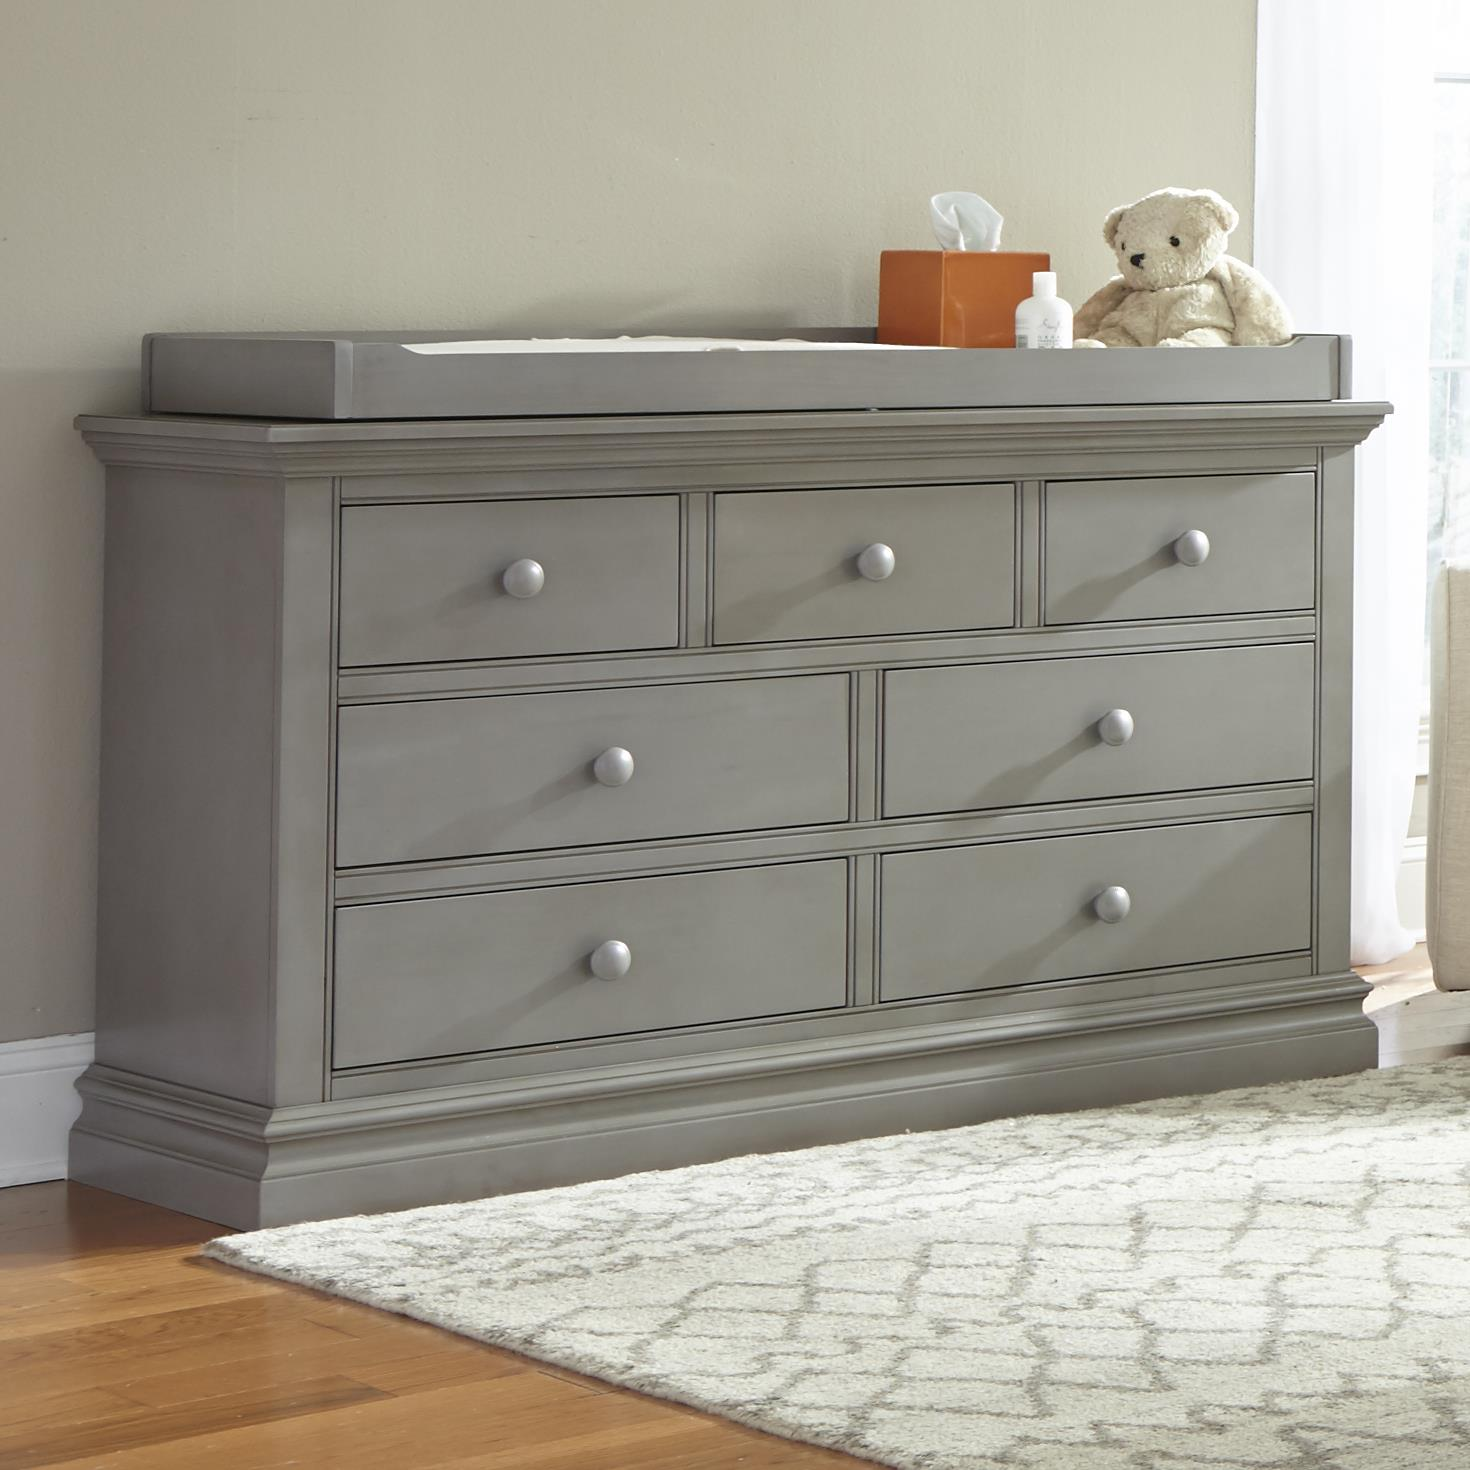 Dresser with Changing Top